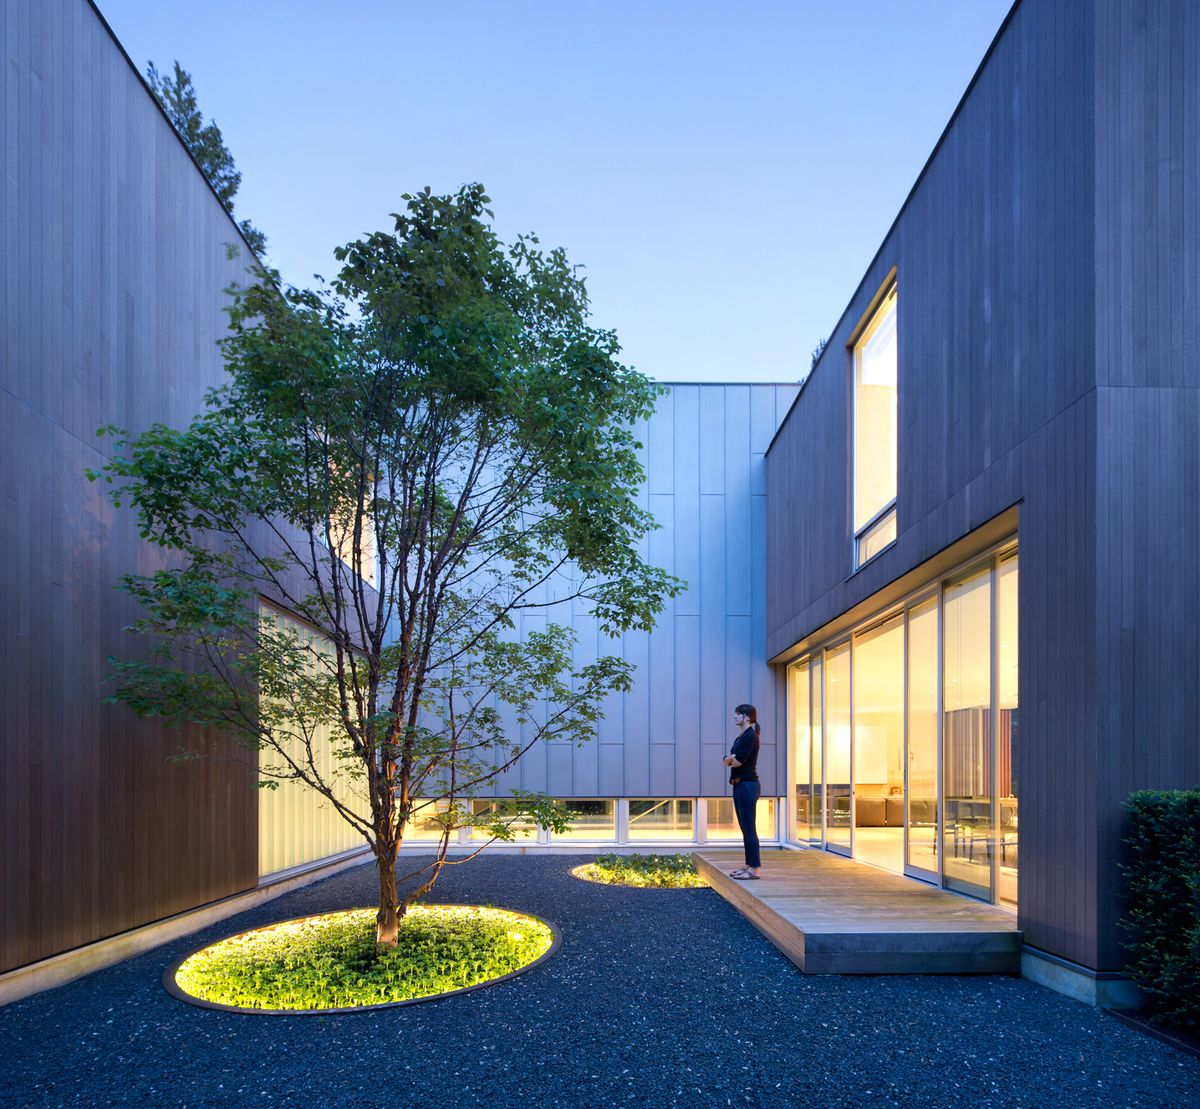 Landscape Lighting Jobs: Today's Employer Of The Day Is James K.M. Cheng Architects